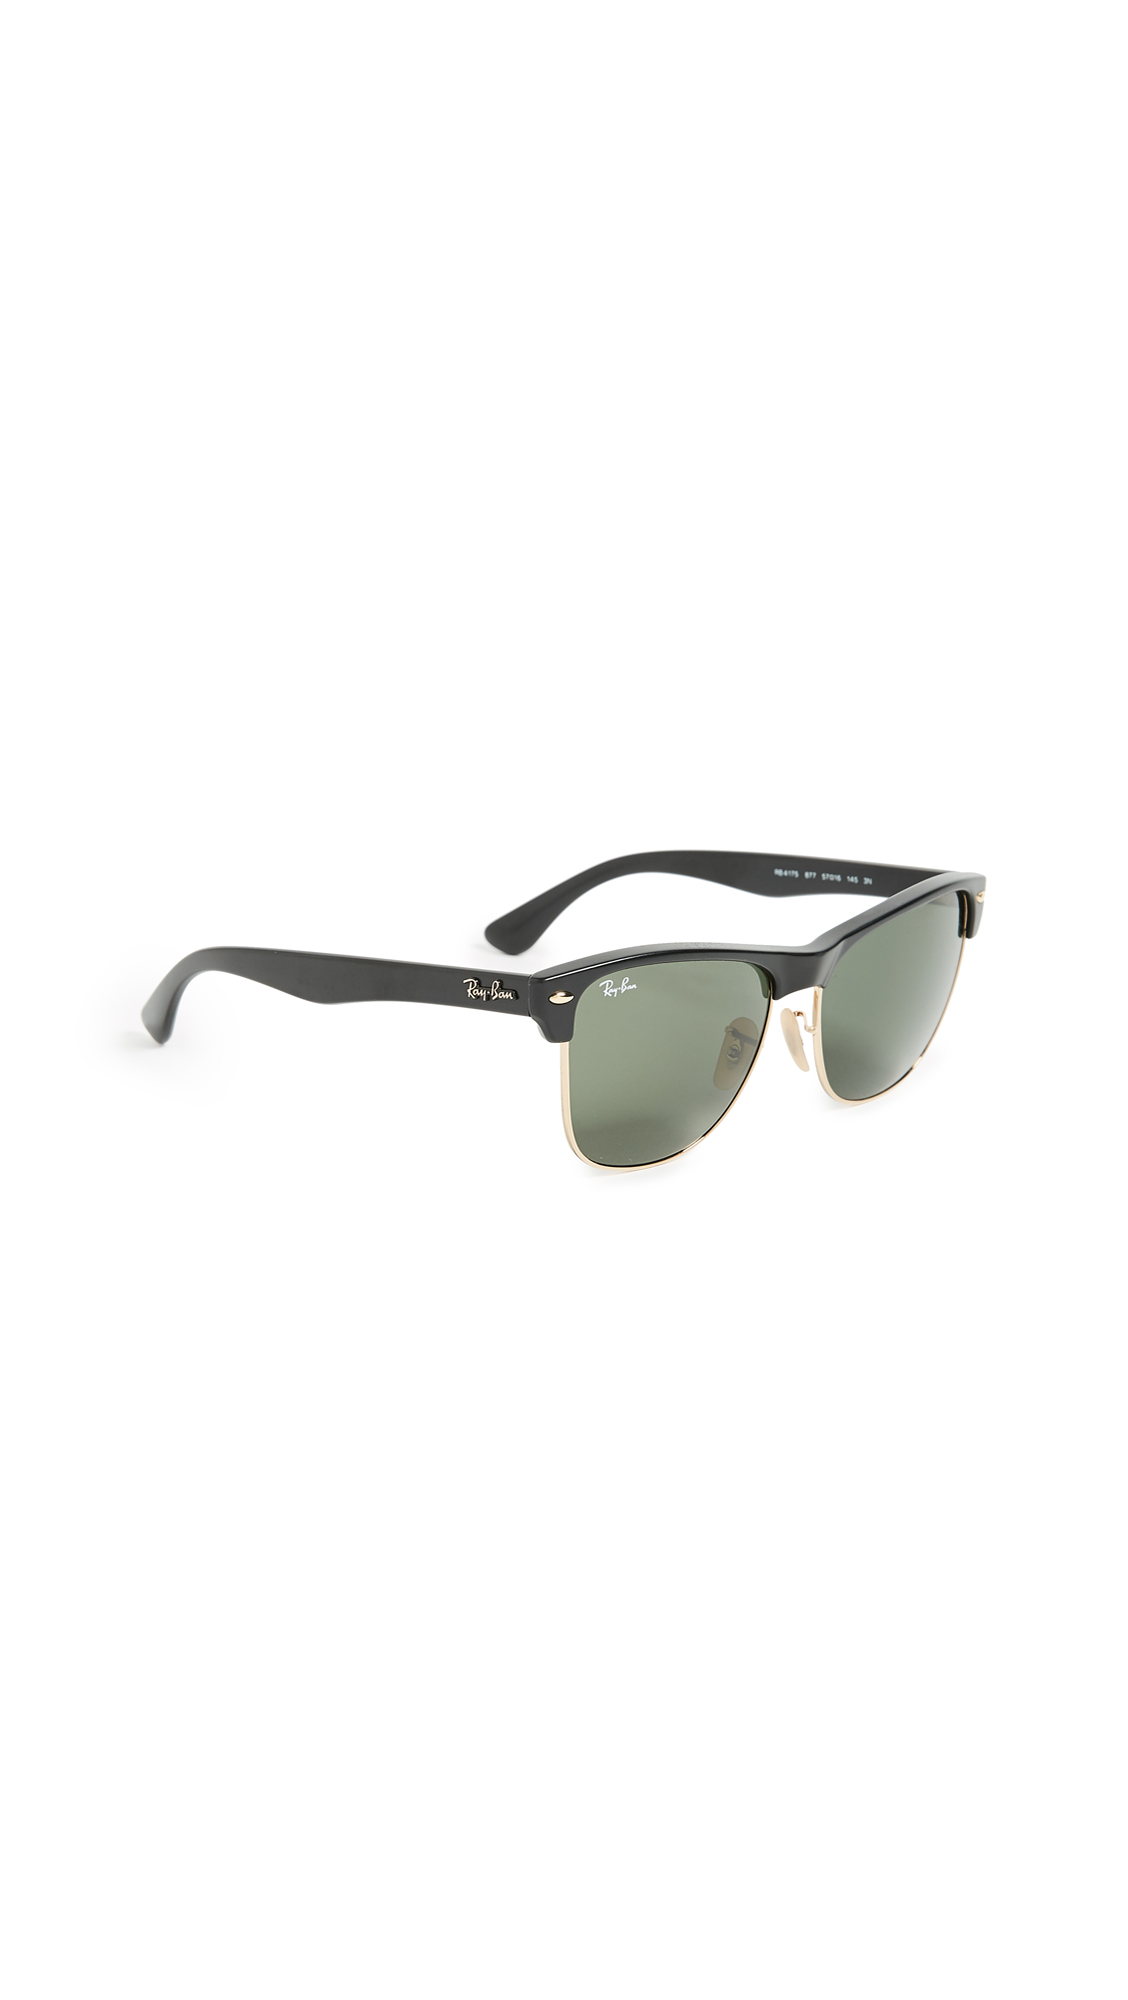 07efd977509a8 Ray-Ban RB4175 Oversized Clubmaster Sunglasses